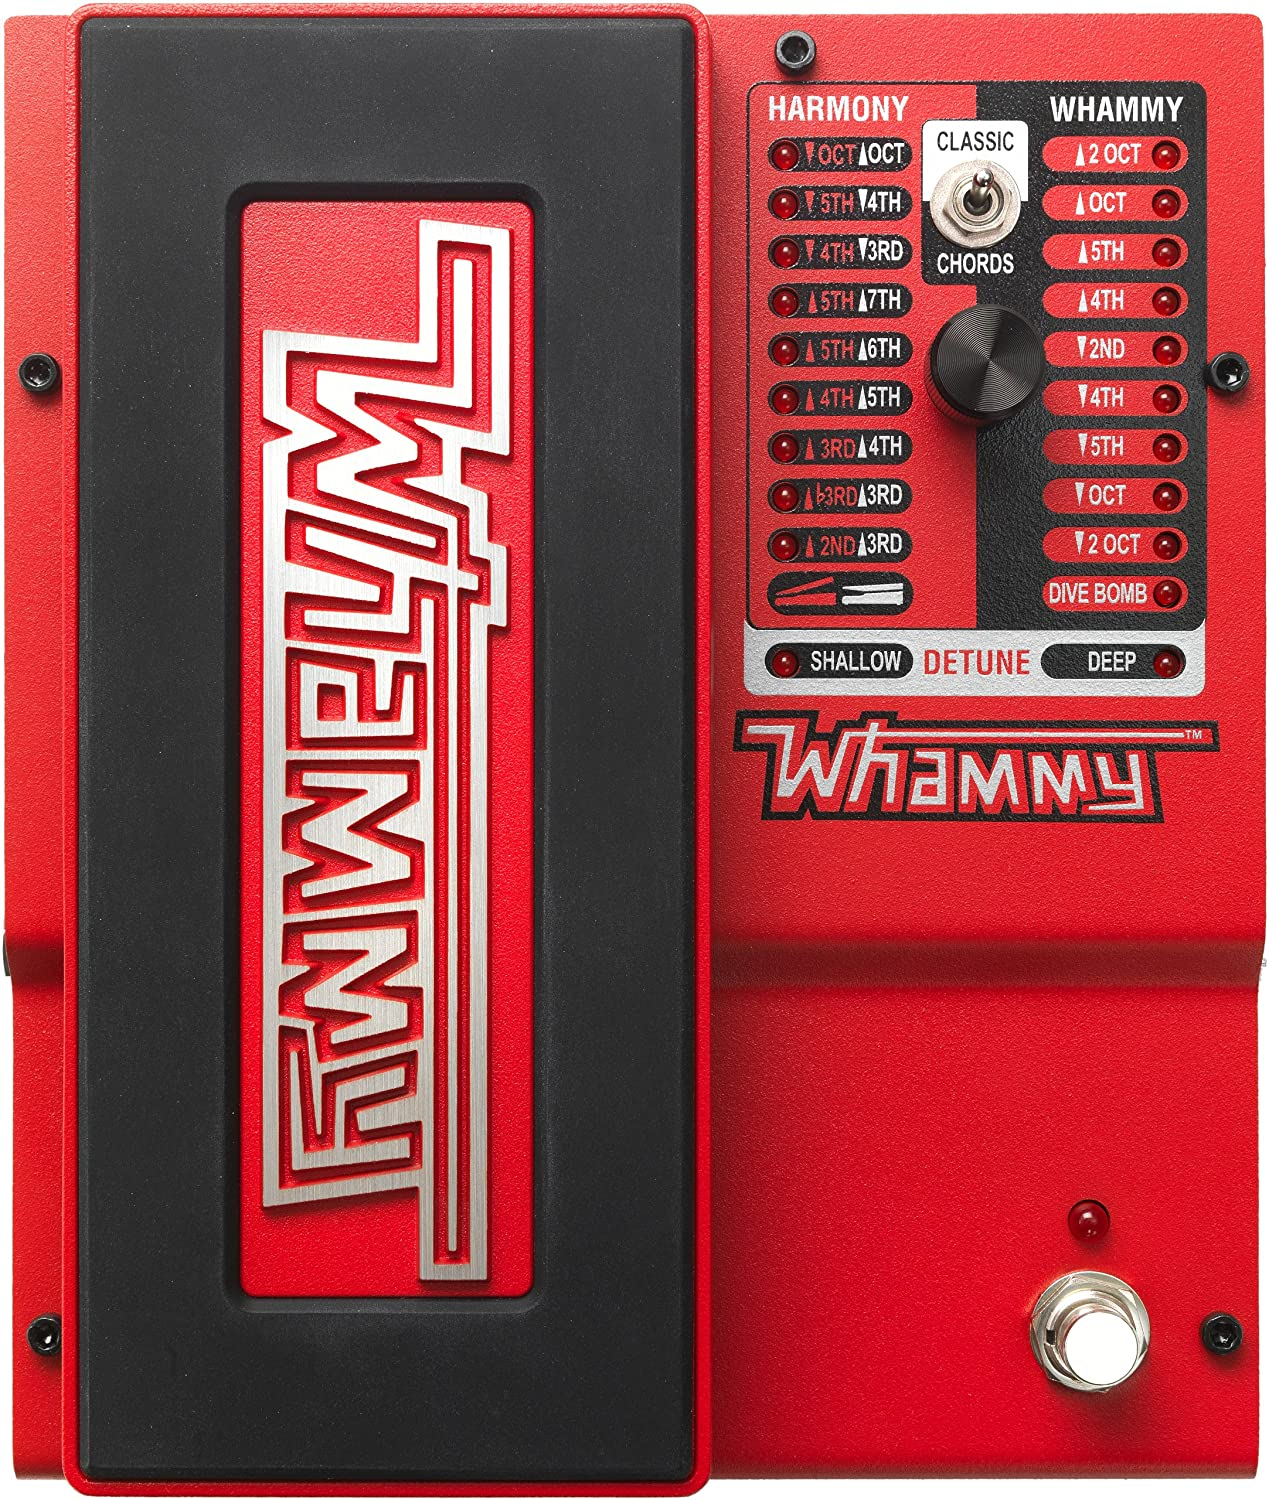 DigiTech Whammyv-01 Guitar Pitch Effect Pedal